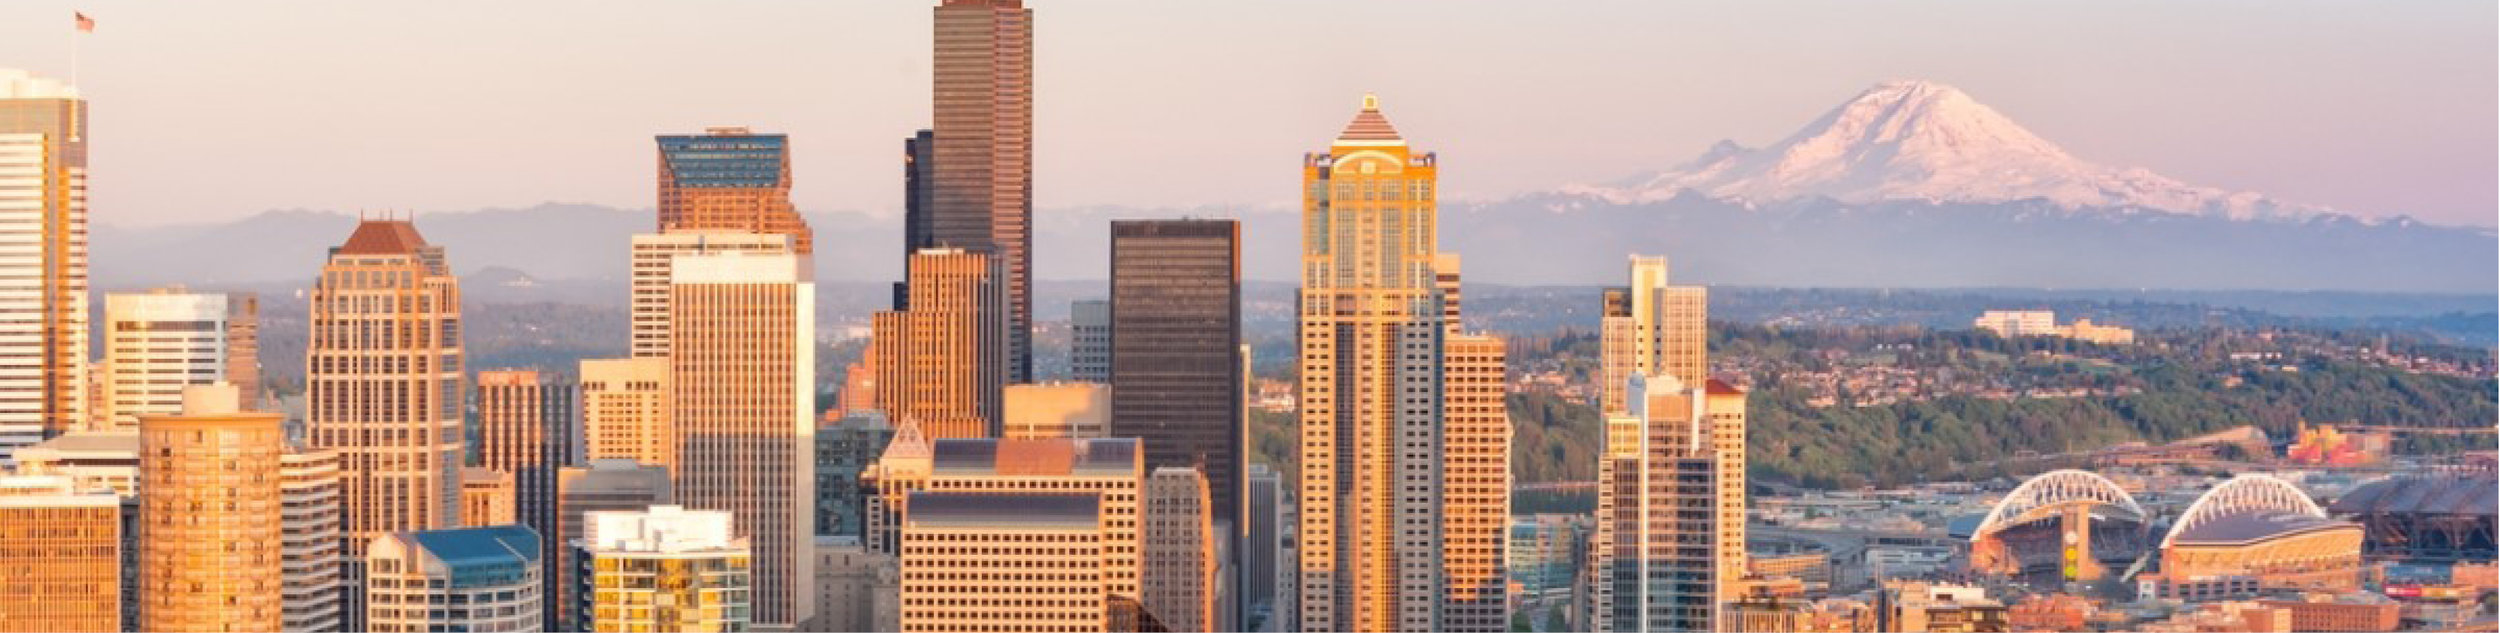 The Top 10 Game-Changing Policies and Drivers Affecting Development in the Puget Sound - By William Hillis